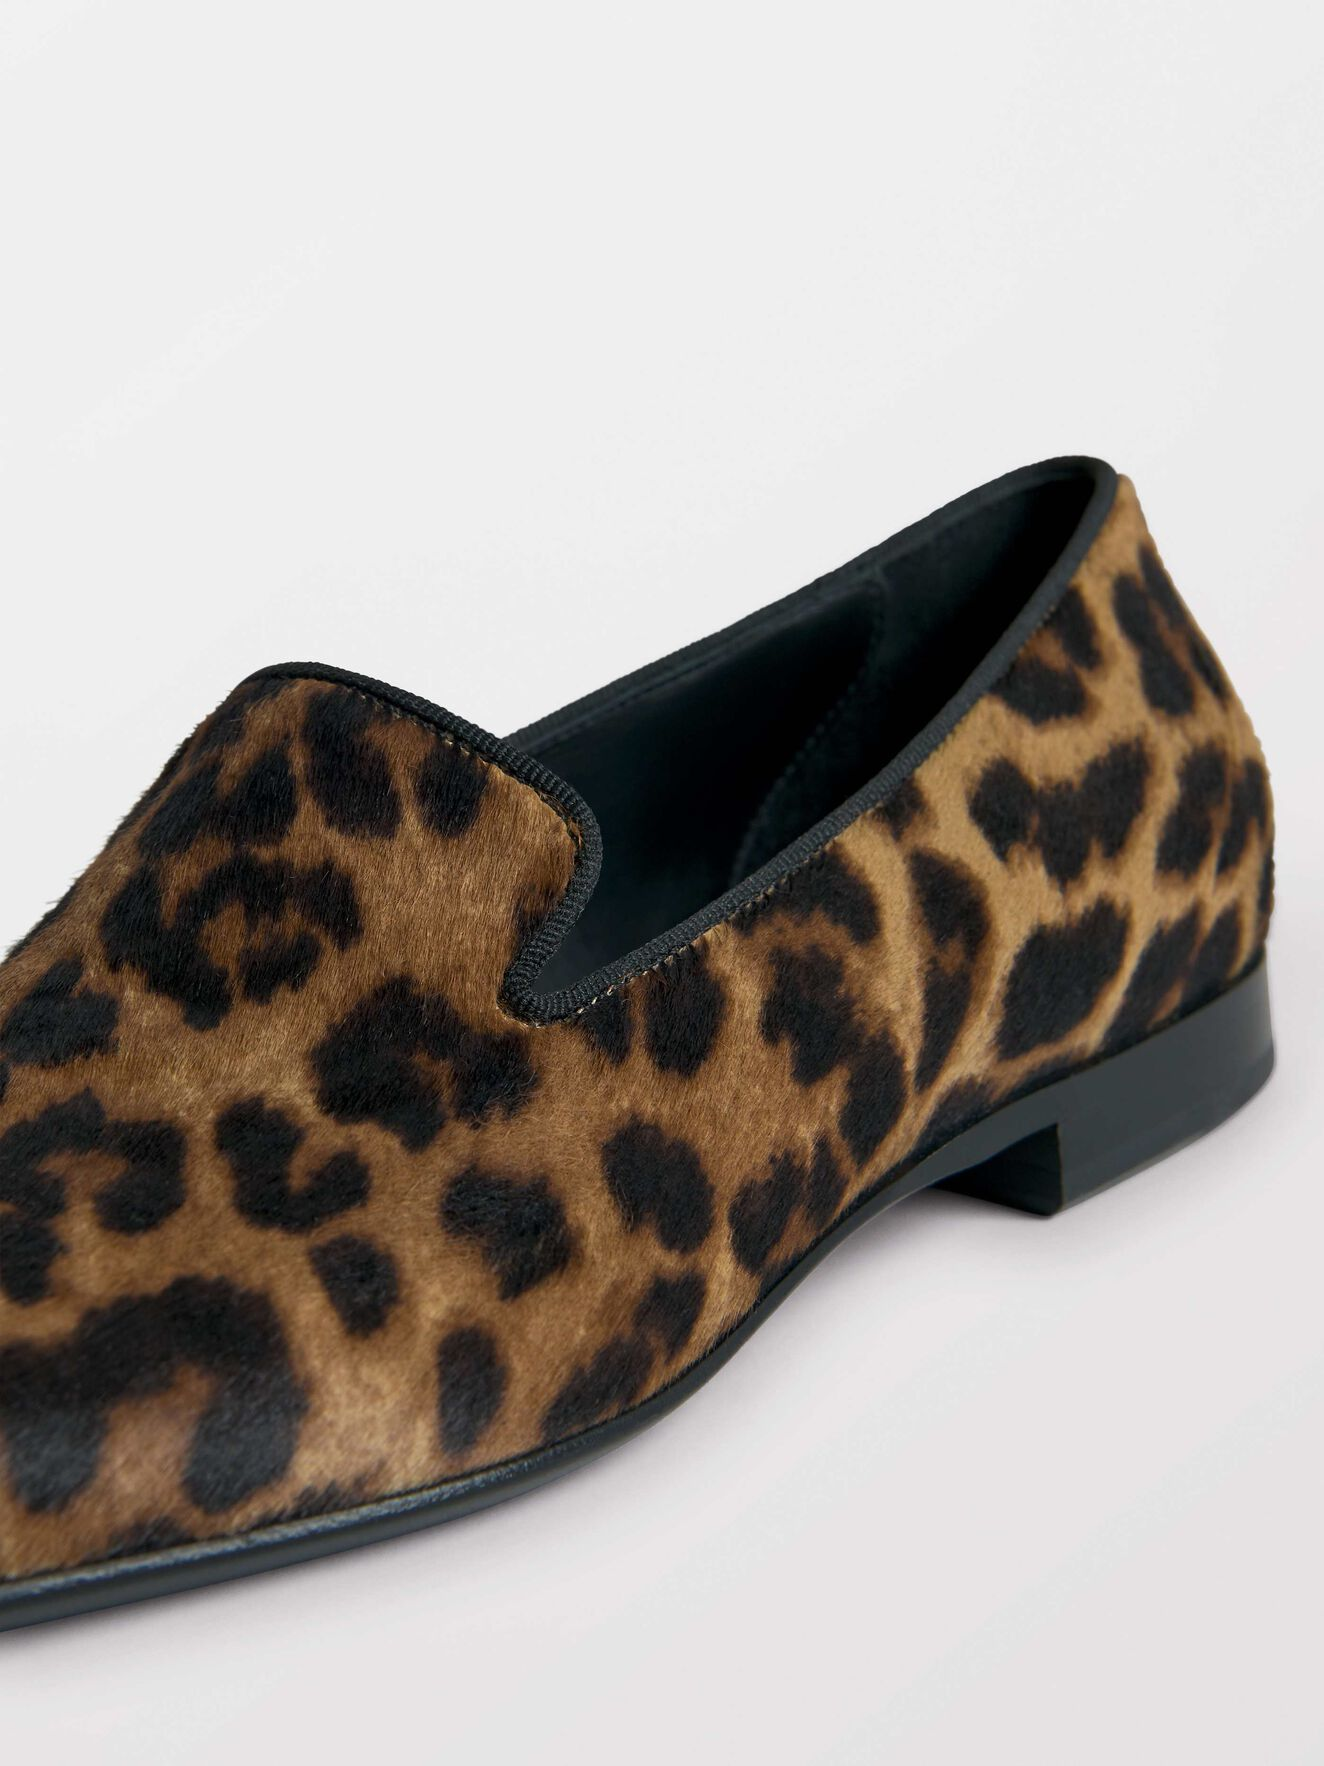 Sartor P Loafers in ARTWORK from Tiger of Sweden